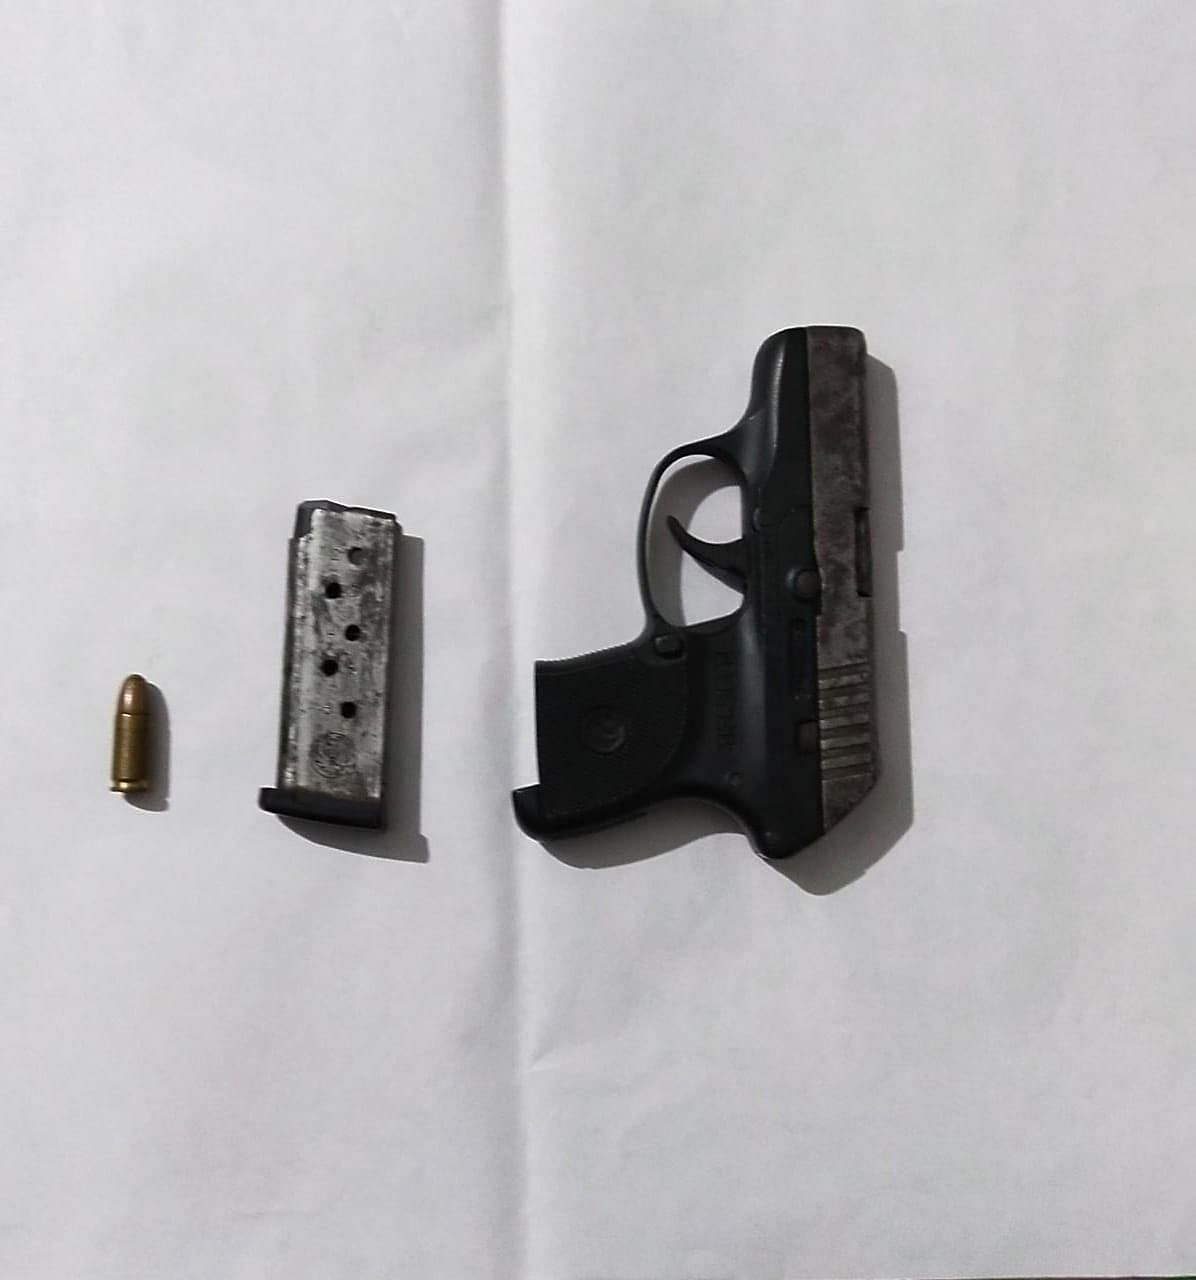 A factory-made 7.65 mm pistol with one magazine and live bullet were recovered from their possession